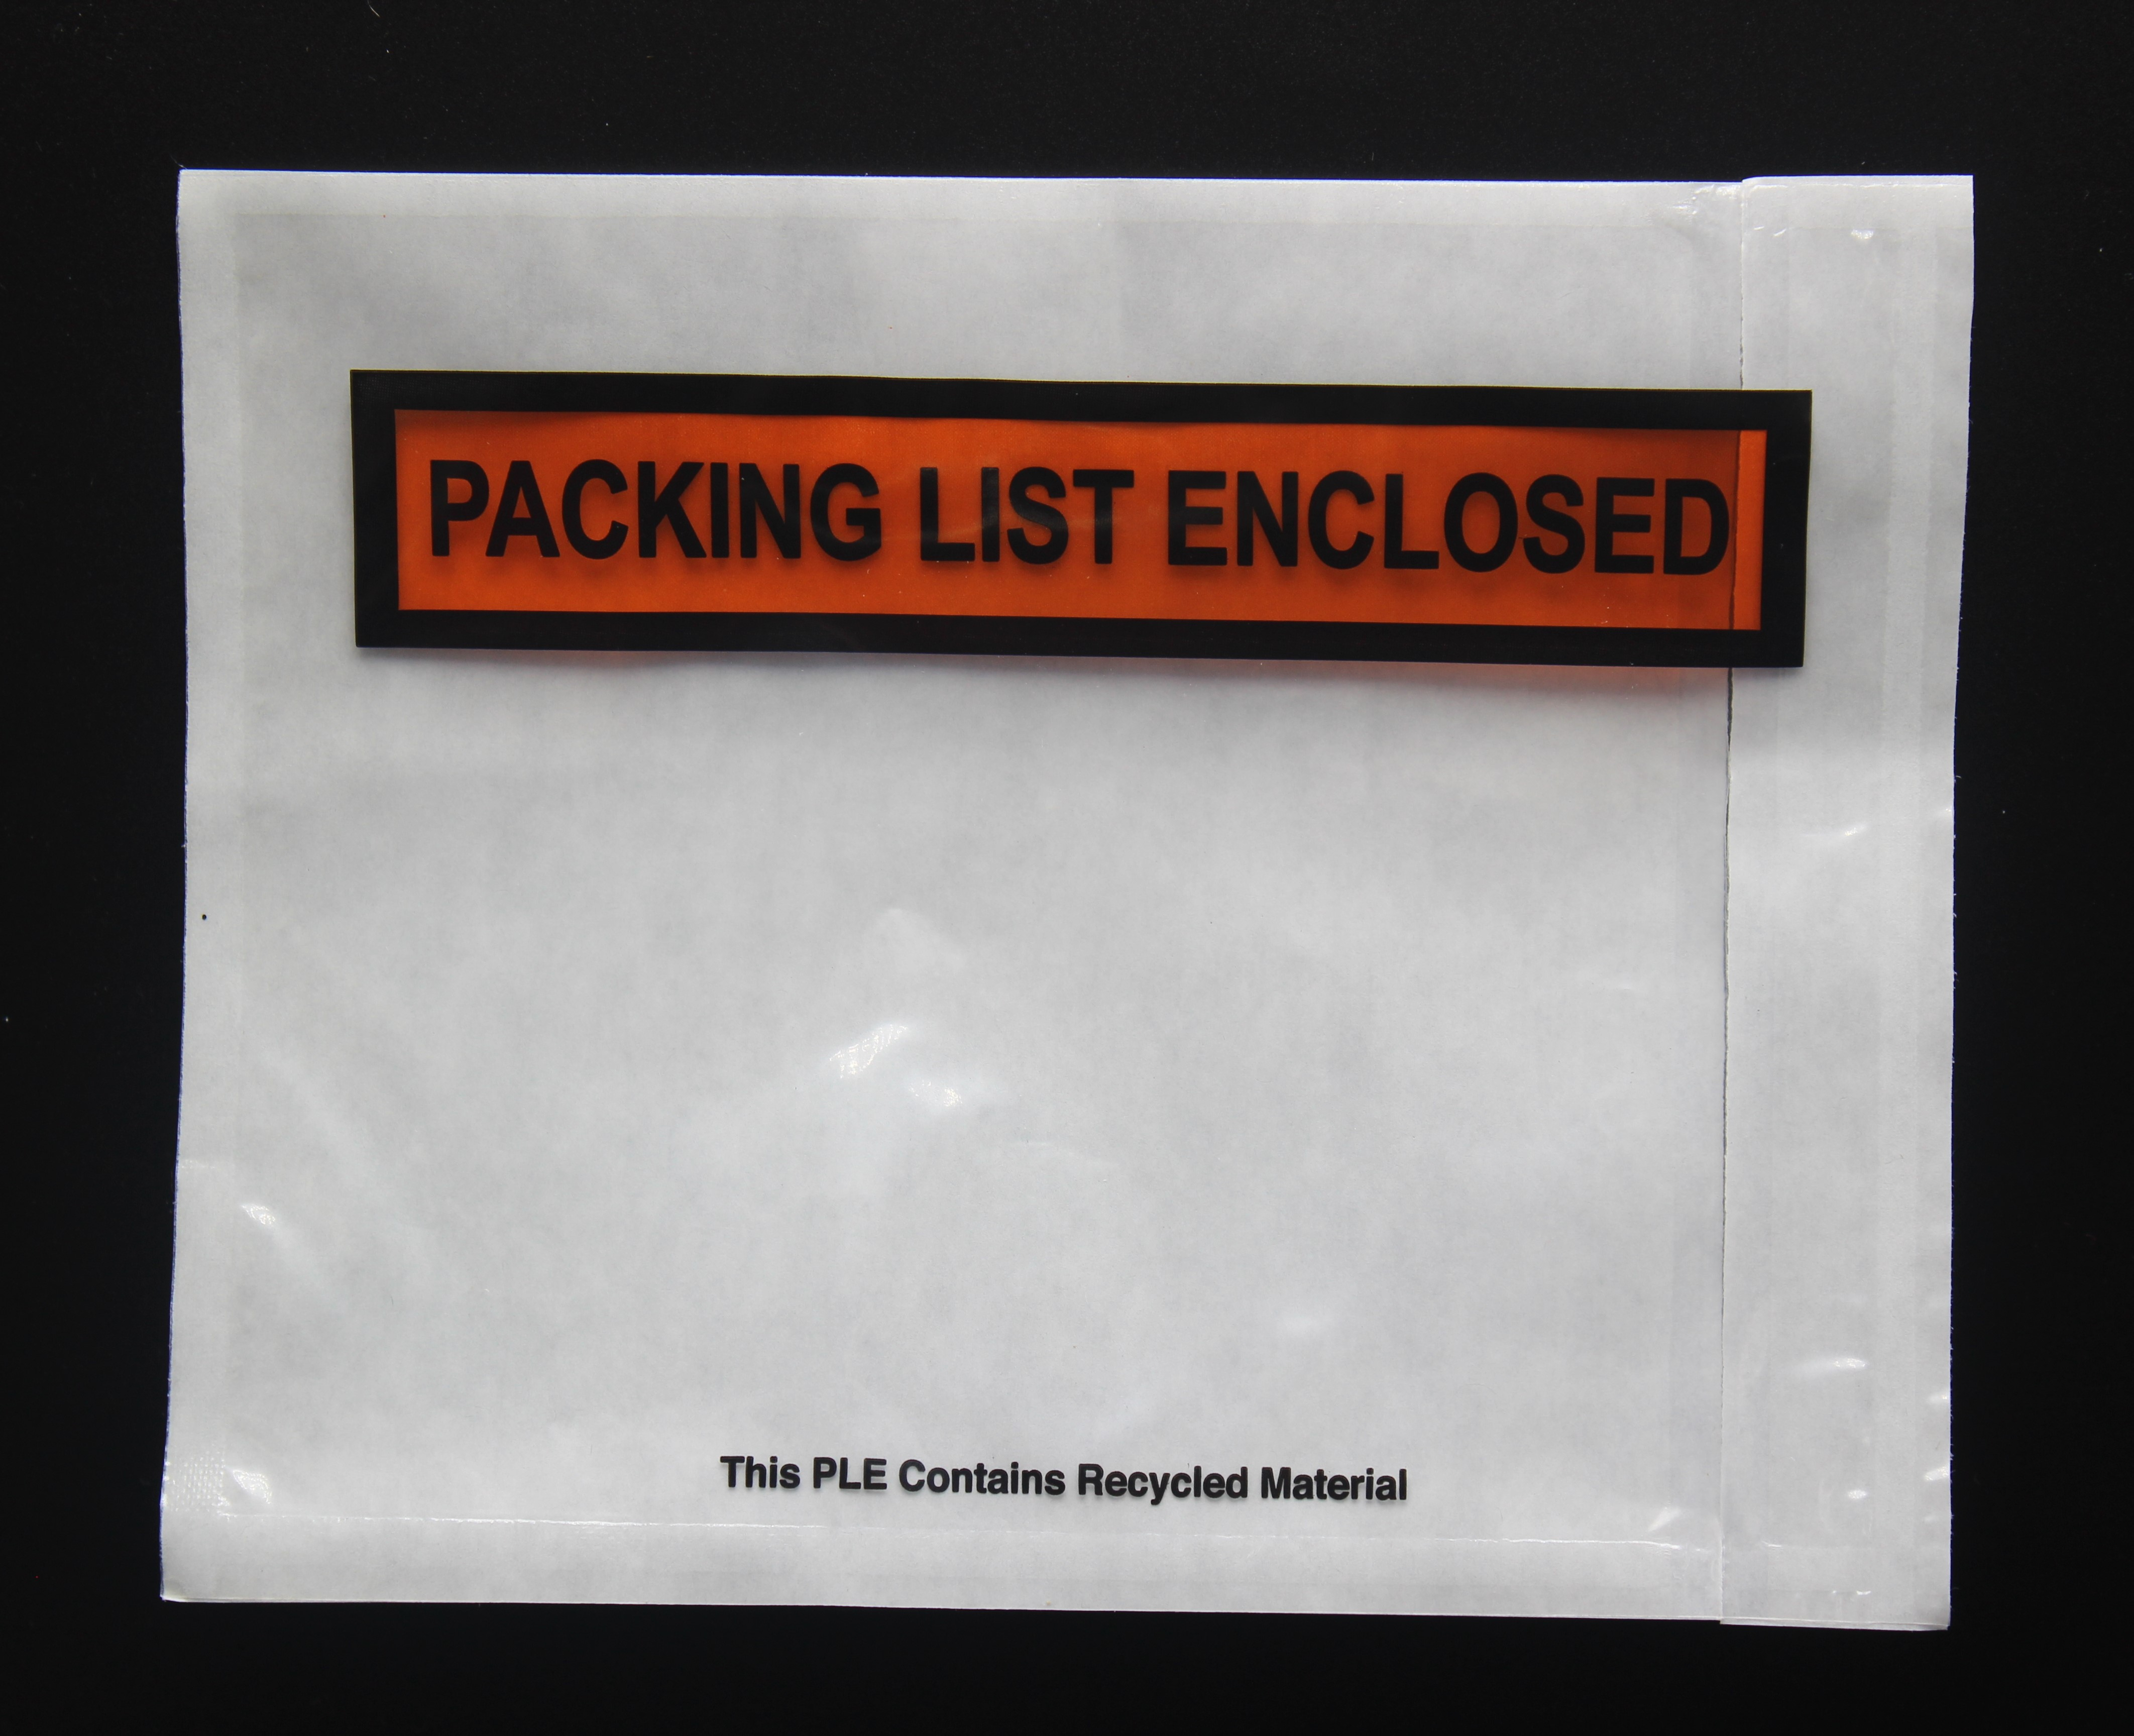 "*4 1/2"" x 5 1/2"" Packing List Enclosed Label"